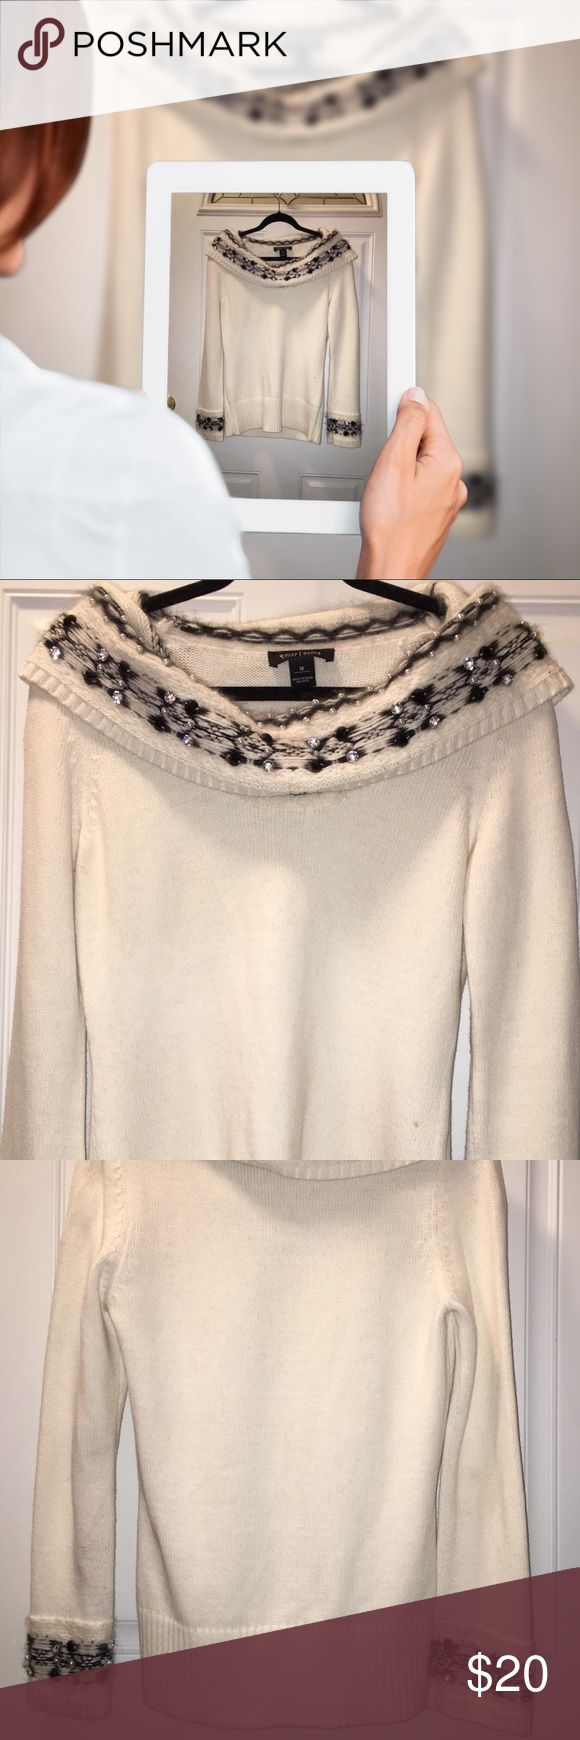 Elegance Defined. Lush Embellished Sweater WHBM elegant off, or on, shoulder Sweater. Vey warm, and very refined. Warn twice. Truly a statement piece. Lush and luxurious with various beads and stones placed by hand. Three small spots on front, no attempt to remove but probably easily cleaned or easily hidden. See close up for spots. White House Black Market Sweaters Crew & Scoop Necks